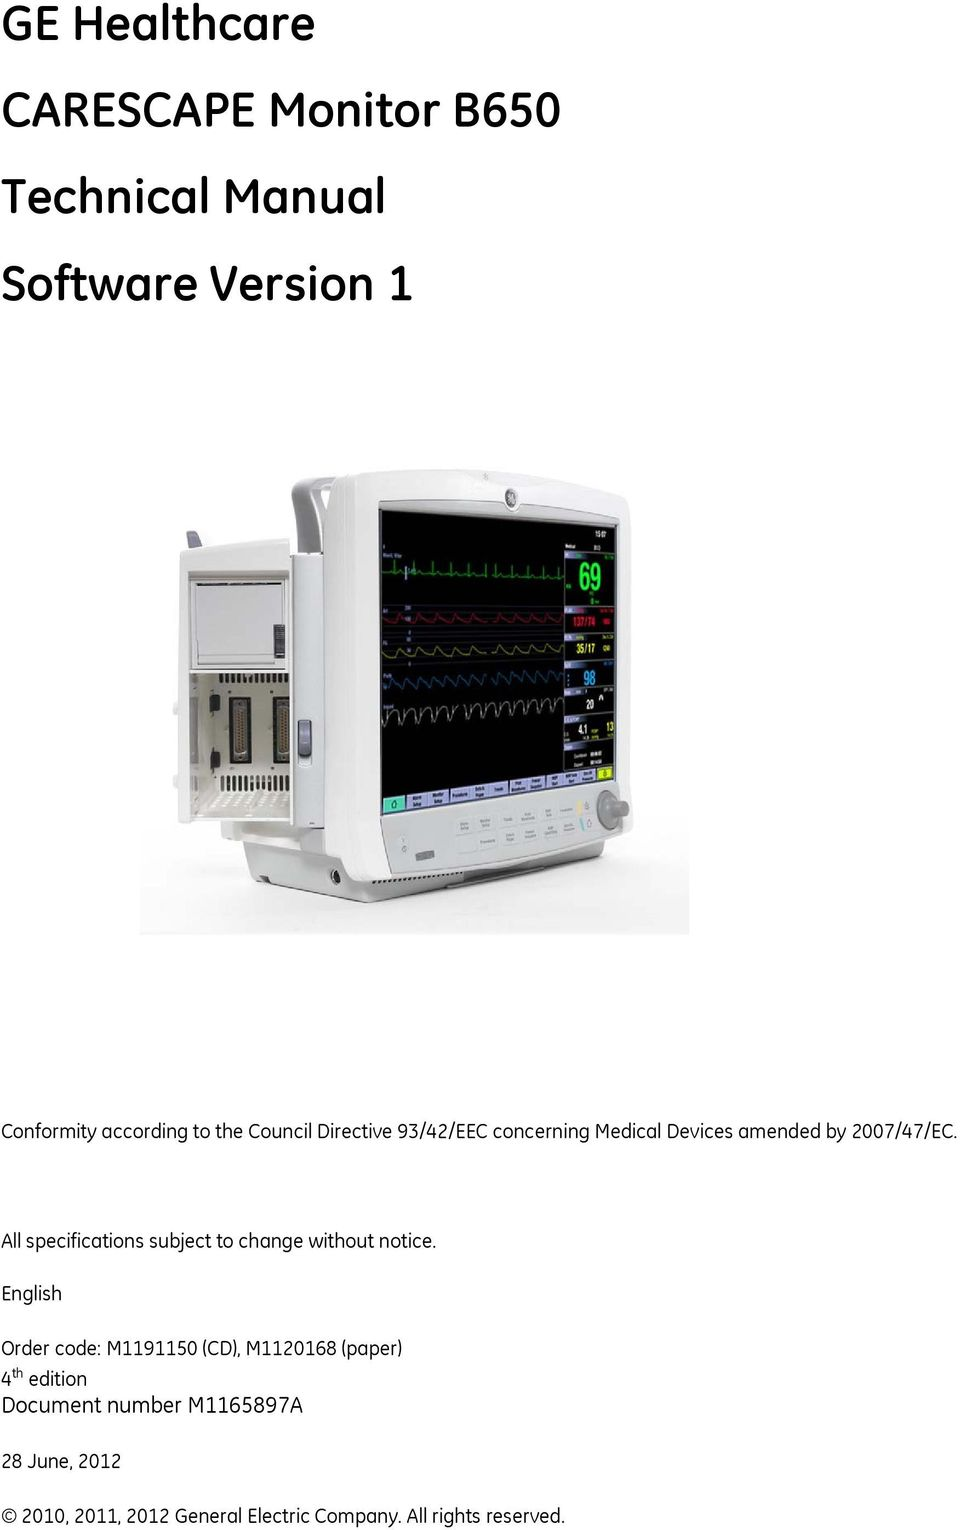 ge healthcare carescape monitor b650 technical manual software rh docplayer net carescape monitor b650 manual carescape monitor b850 user manual